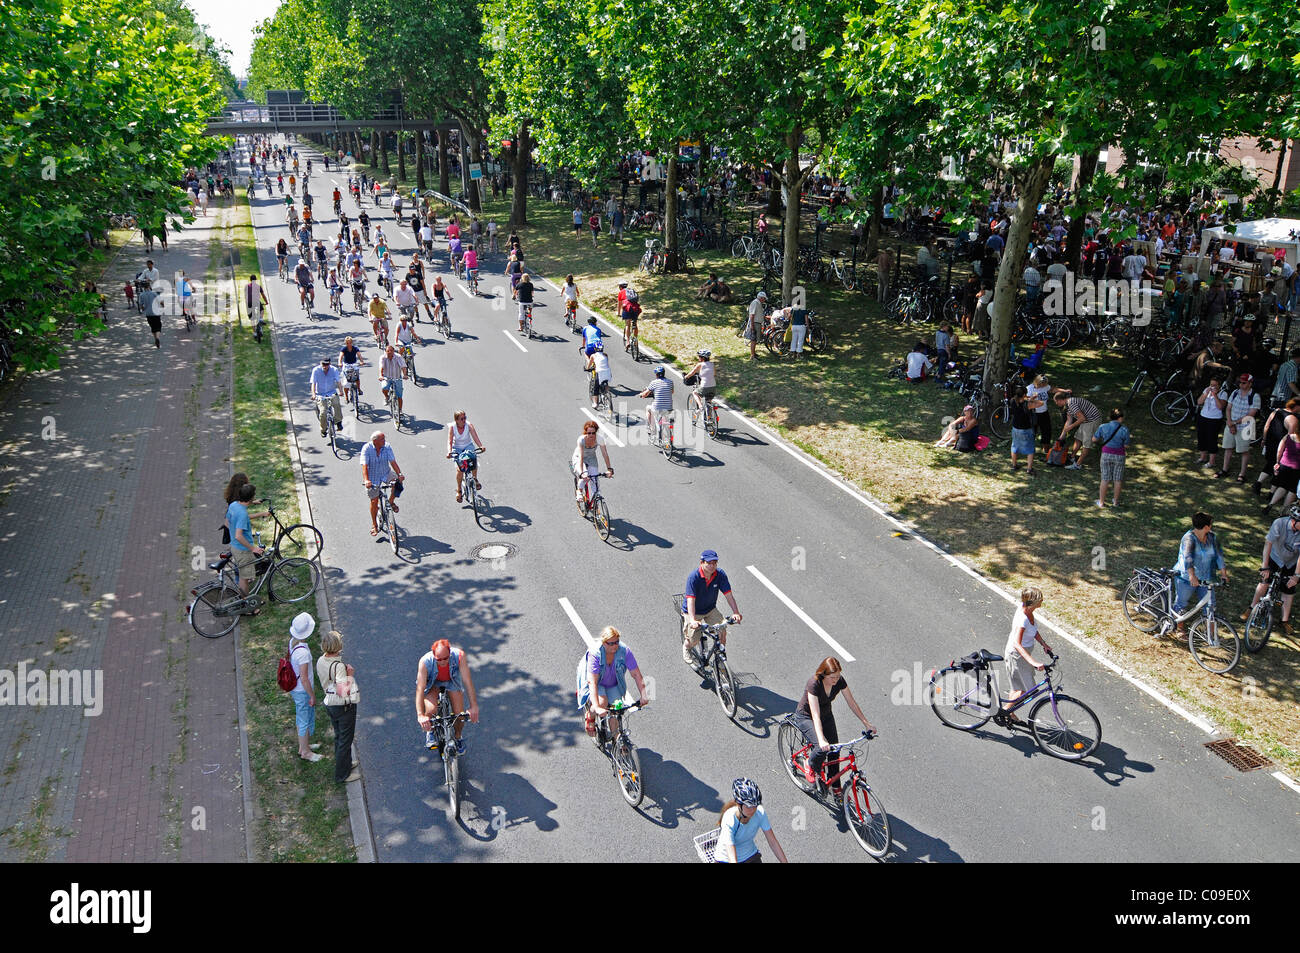 Cyclists, Still-Leben Ruhrschnellweg, B1, A 40 motorway, motorway blocked for cars, art event, Capital of Culture - Stock Image